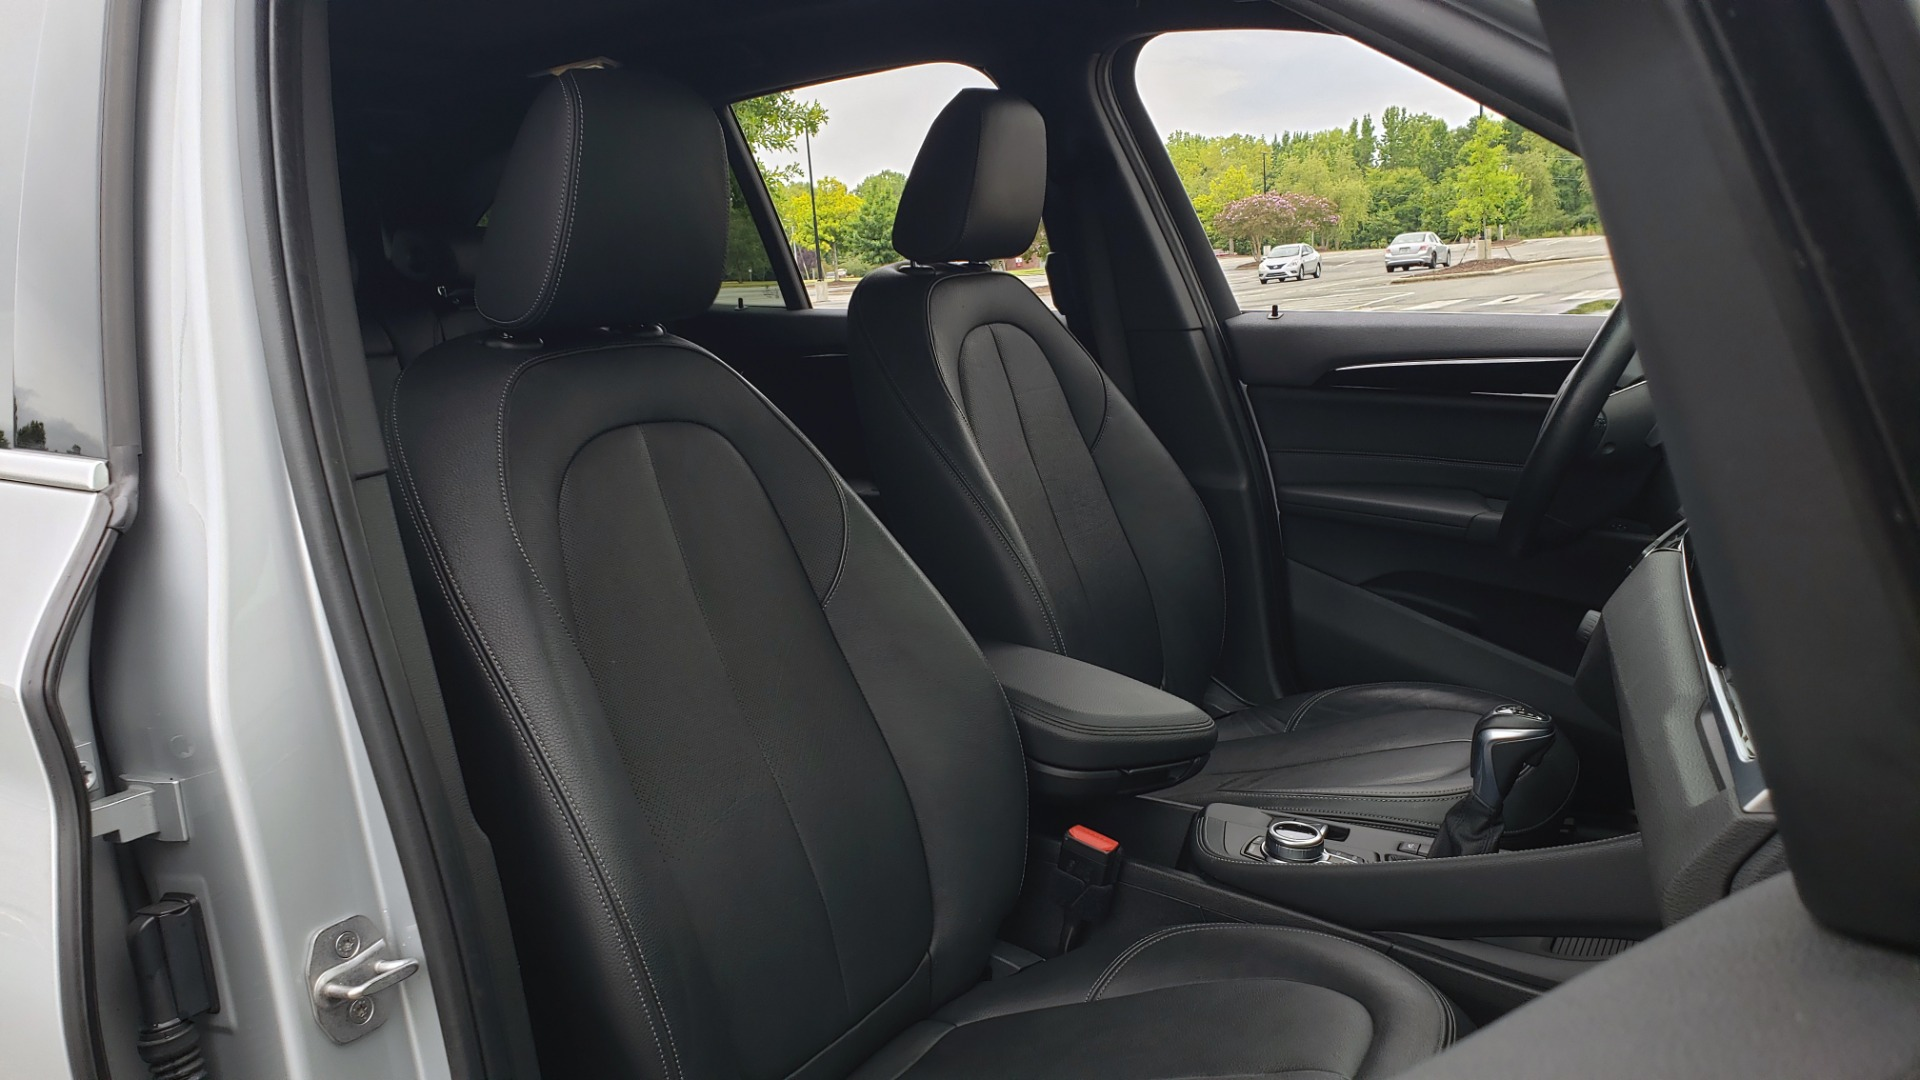 Used 2018 BMW X1 XDRIVE38I / NAV / CONV PKG / PANO-ROOF / HTD STS / REARVIEW for sale $28,995 at Formula Imports in Charlotte NC 28227 61